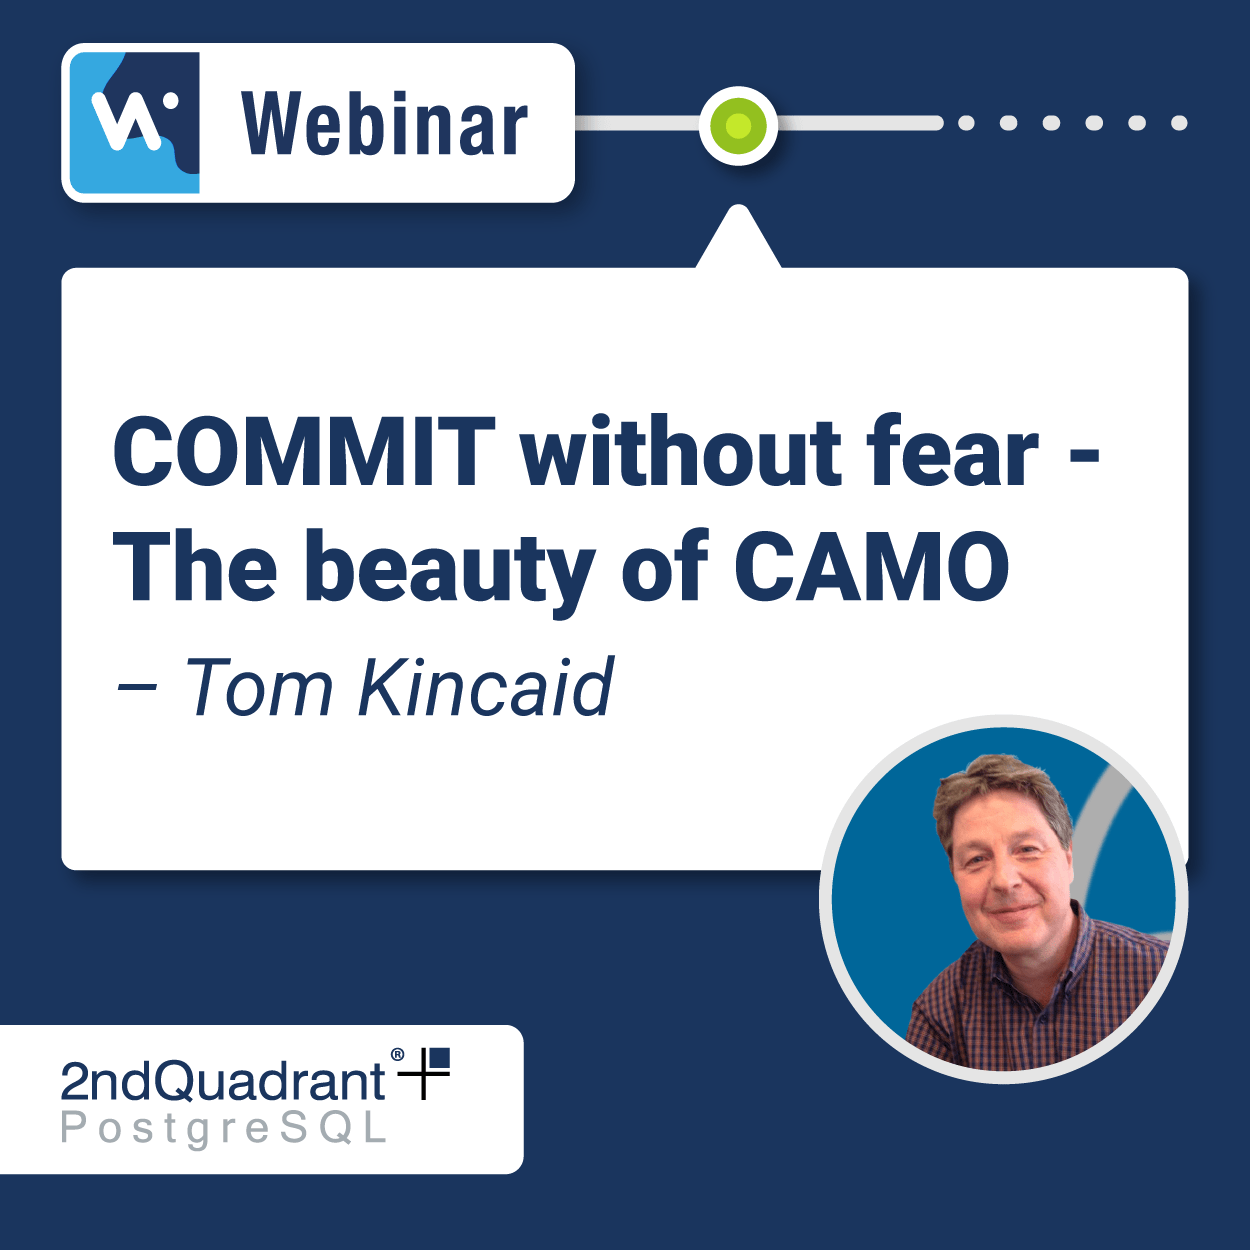 COMMIT Without Fear - The Beauty of CAMO